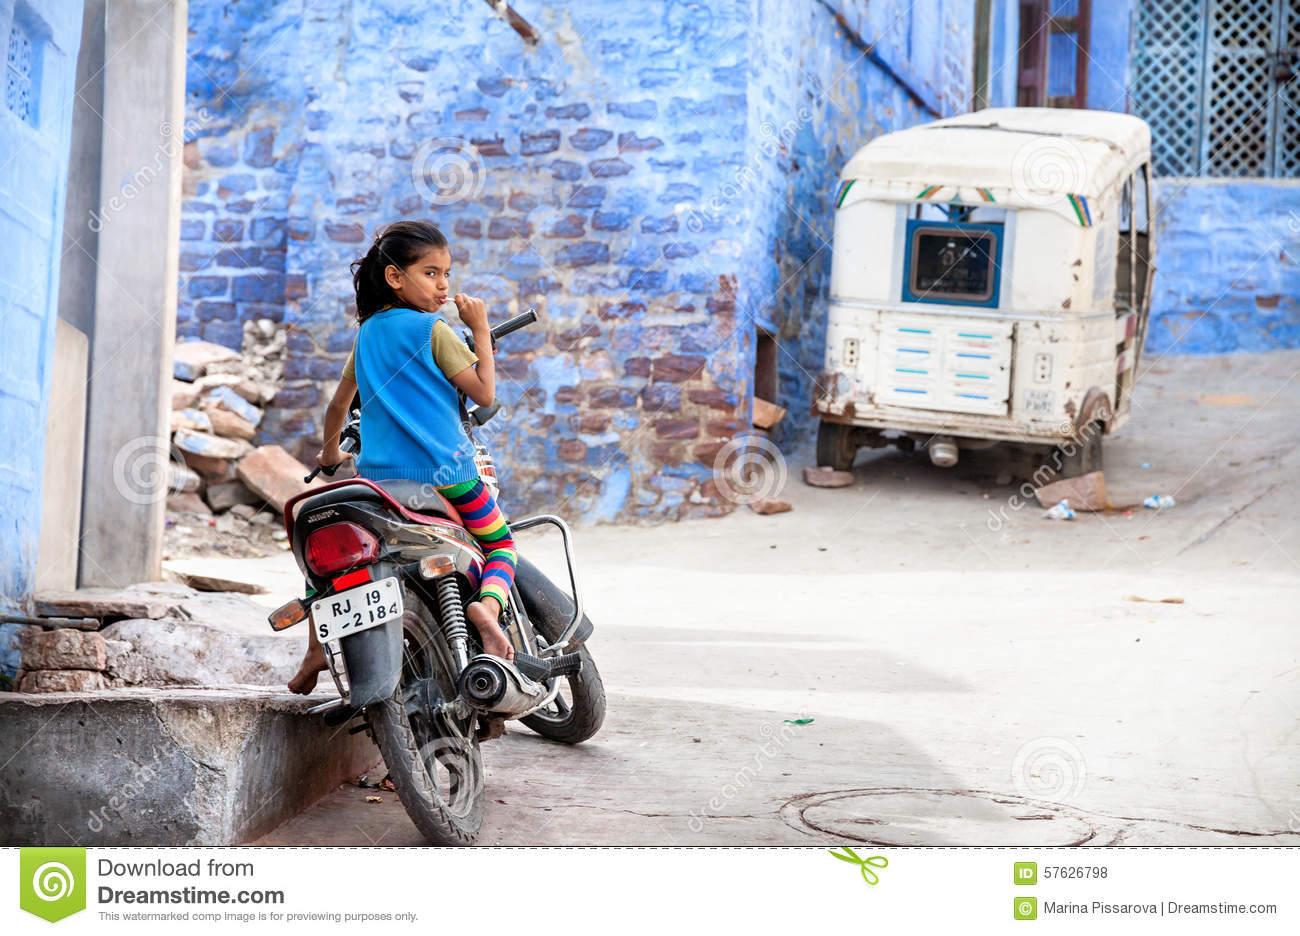 Girl on the bike in Blue city